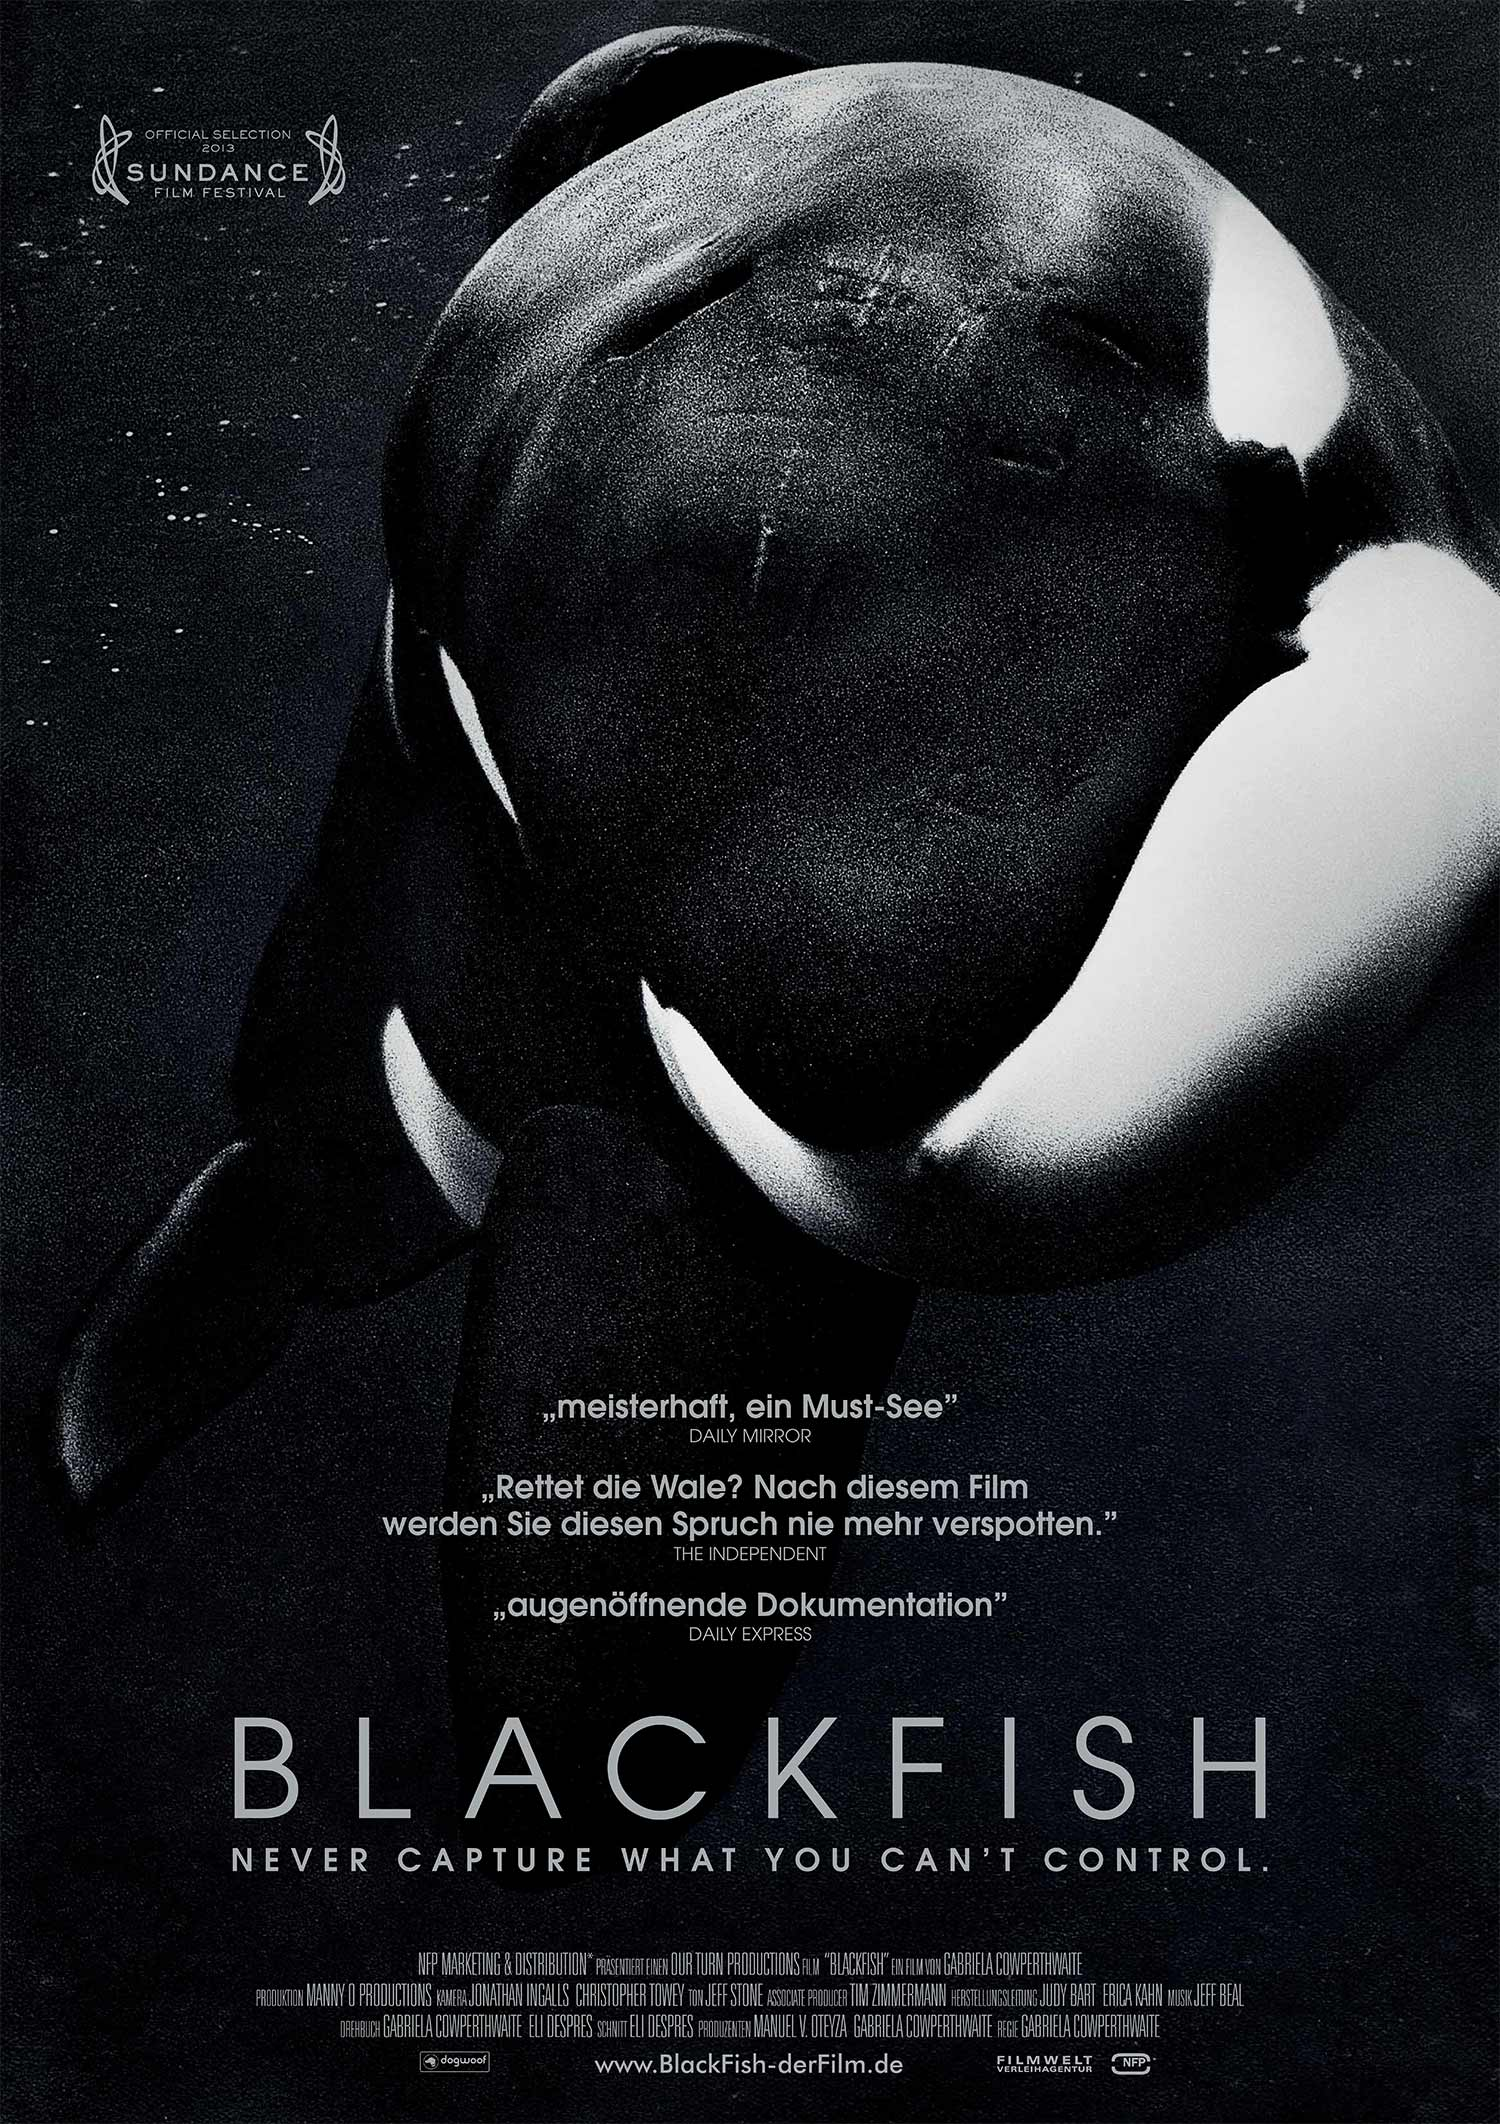 "NFP*<a href=""/blackfish"">→</a><strong>Adaption</strong>"